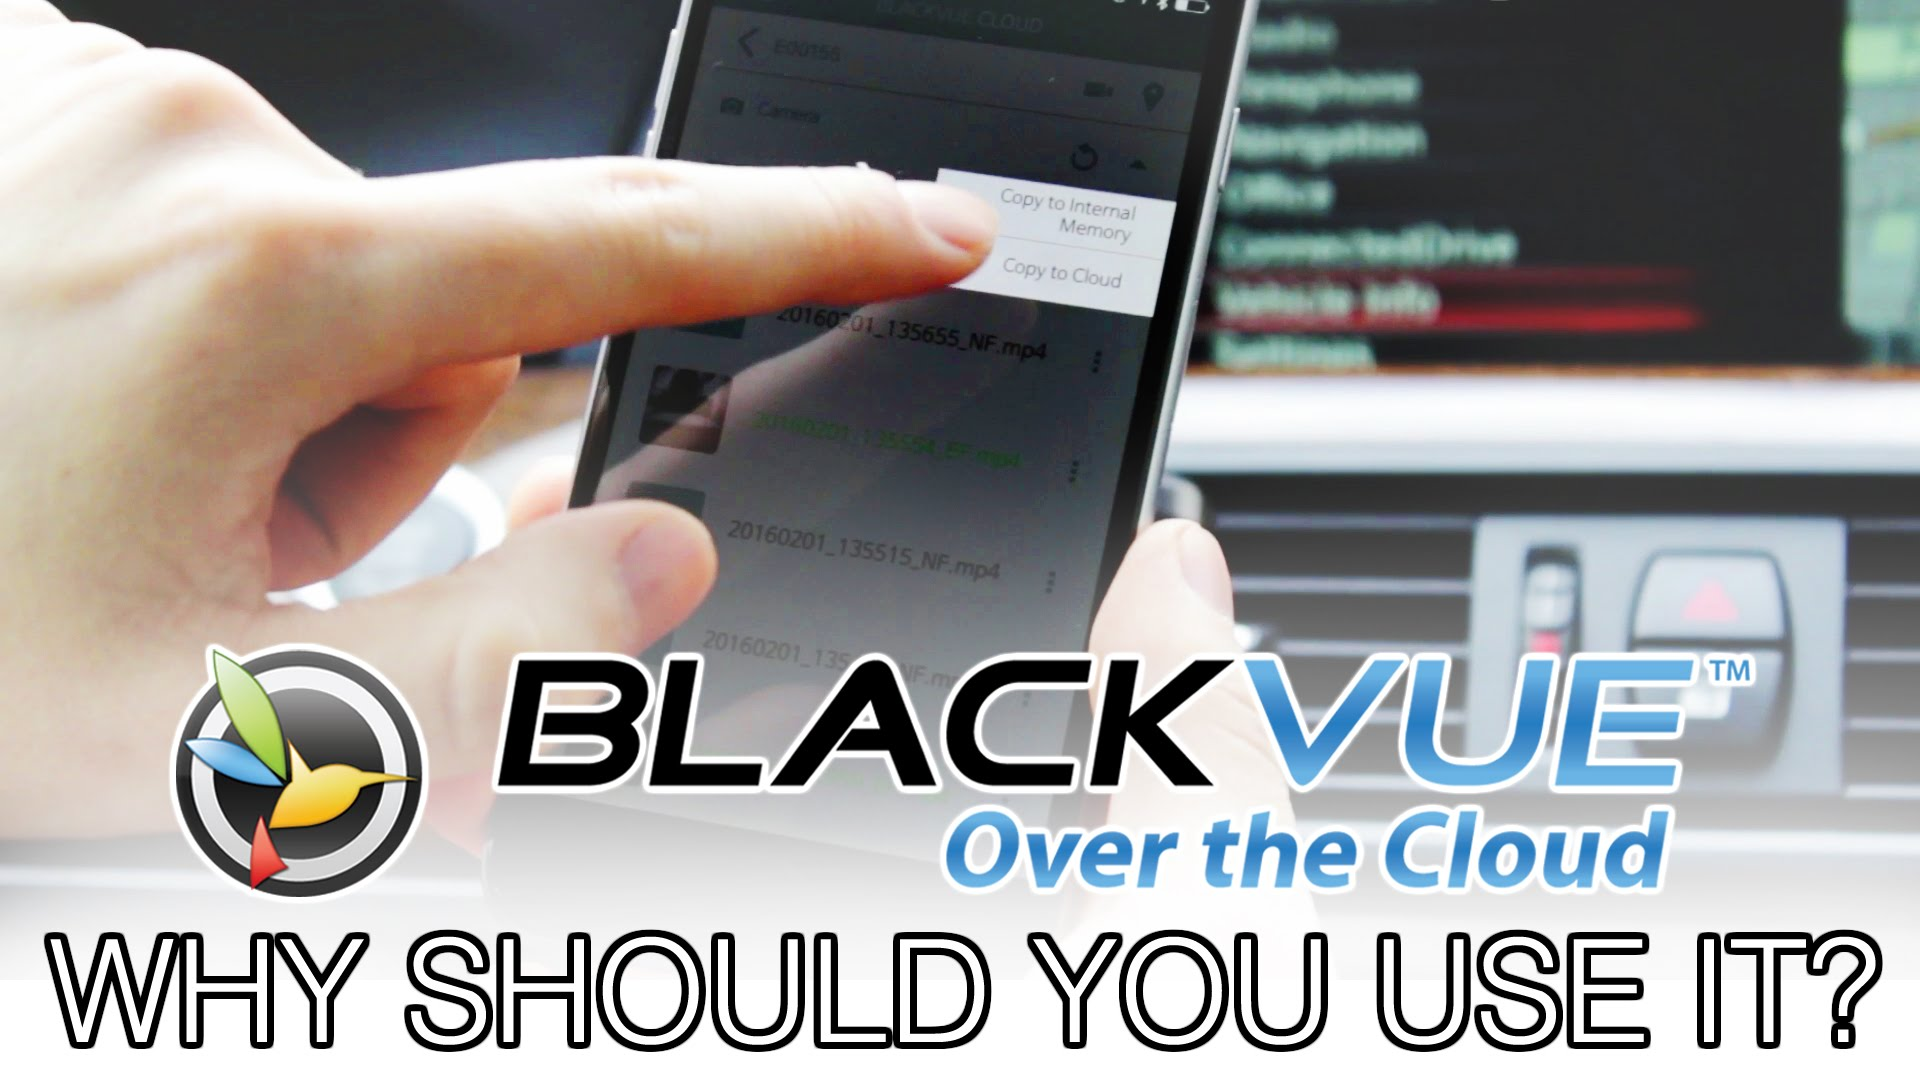 BLACKVUE OVER THE CLOUD – Why Should You Use It?